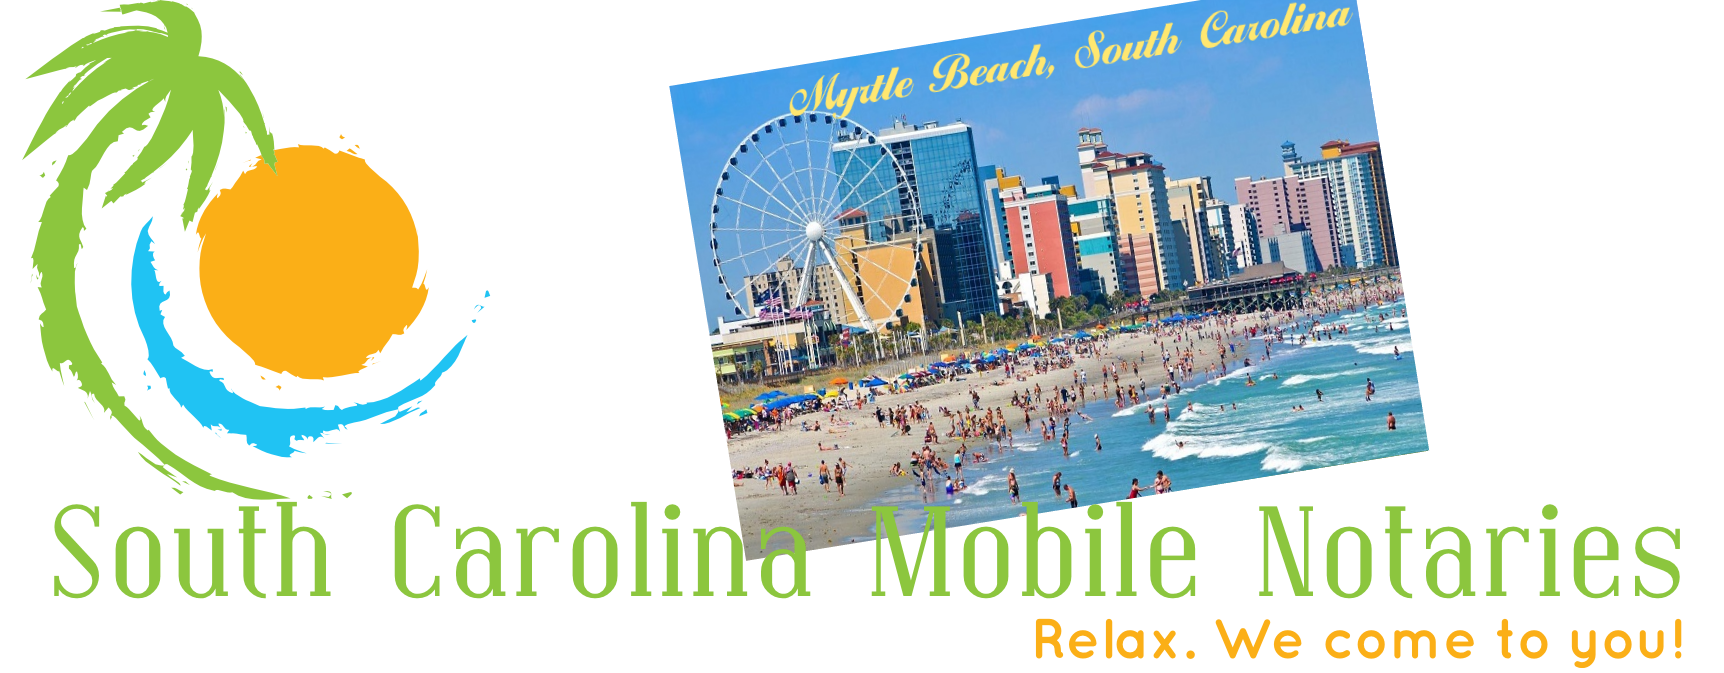 Myrtle Beach South Carolna Mobile Notaries; Myrtle Beach mobile notary service; traveling notary public Myrtle Beach; Myrtle Beach wedding officiants; signing agents Myrtle Beach, SC